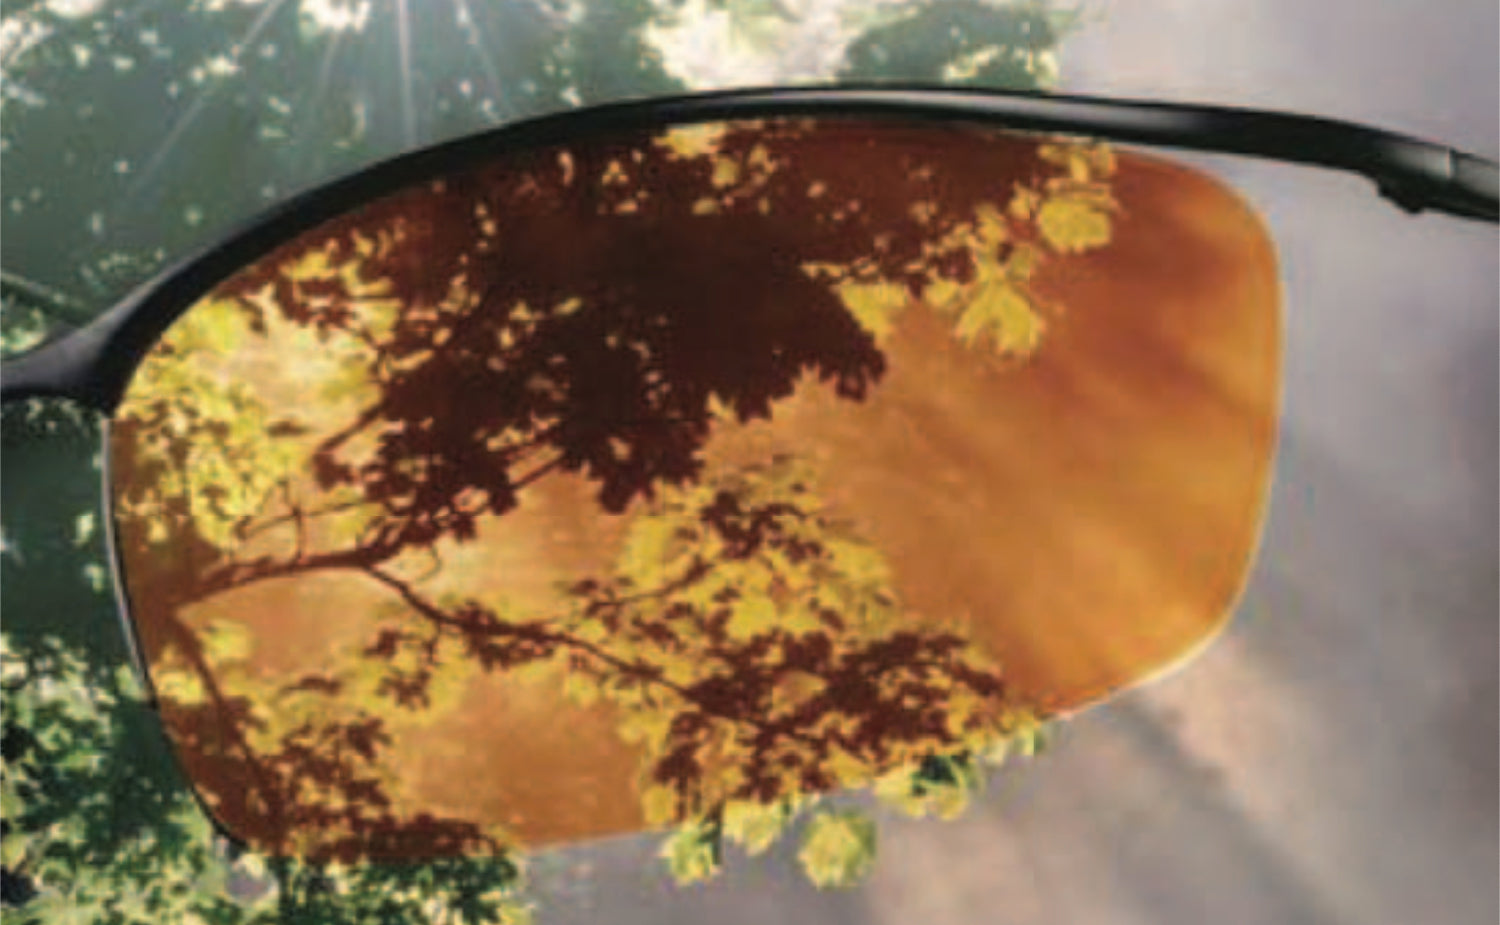 Transitions DriveWear Lenses Outdoors: Bright Light